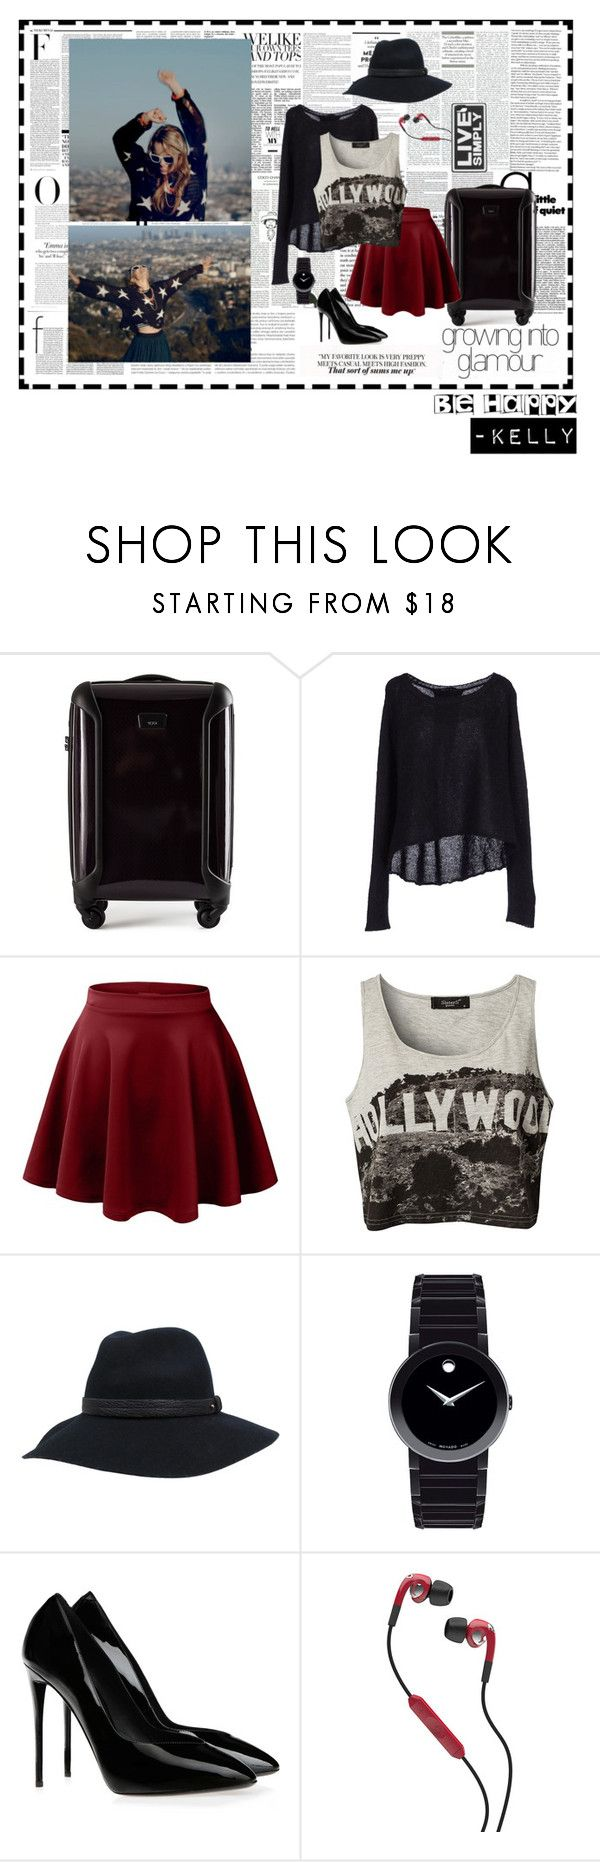 """Ayeee I'm Kelly"" by whiteteeth-teens ❤ liked on Polyvore featuring Vanity Fair, Nicki Minaj, Chanel, SCARLETT, Tumi, Pinko, LE3NO, Sisters Point, rag & bone and Movado"